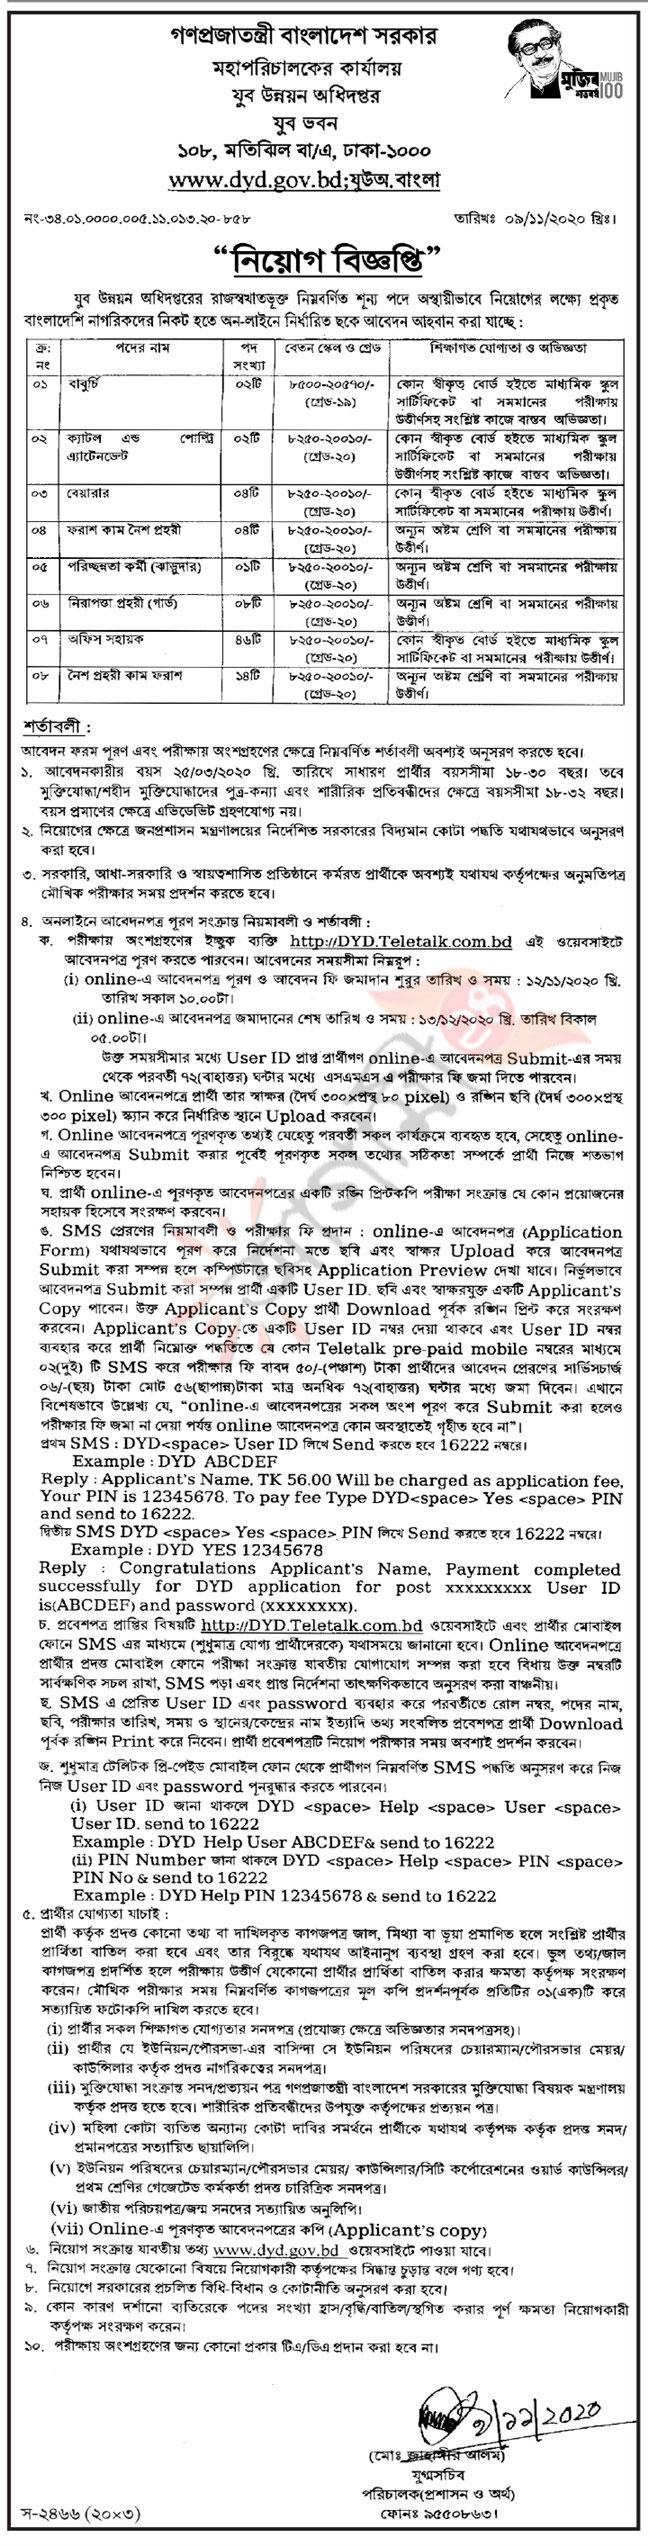 Department of Youth Development (DYD) Job Circular 2020